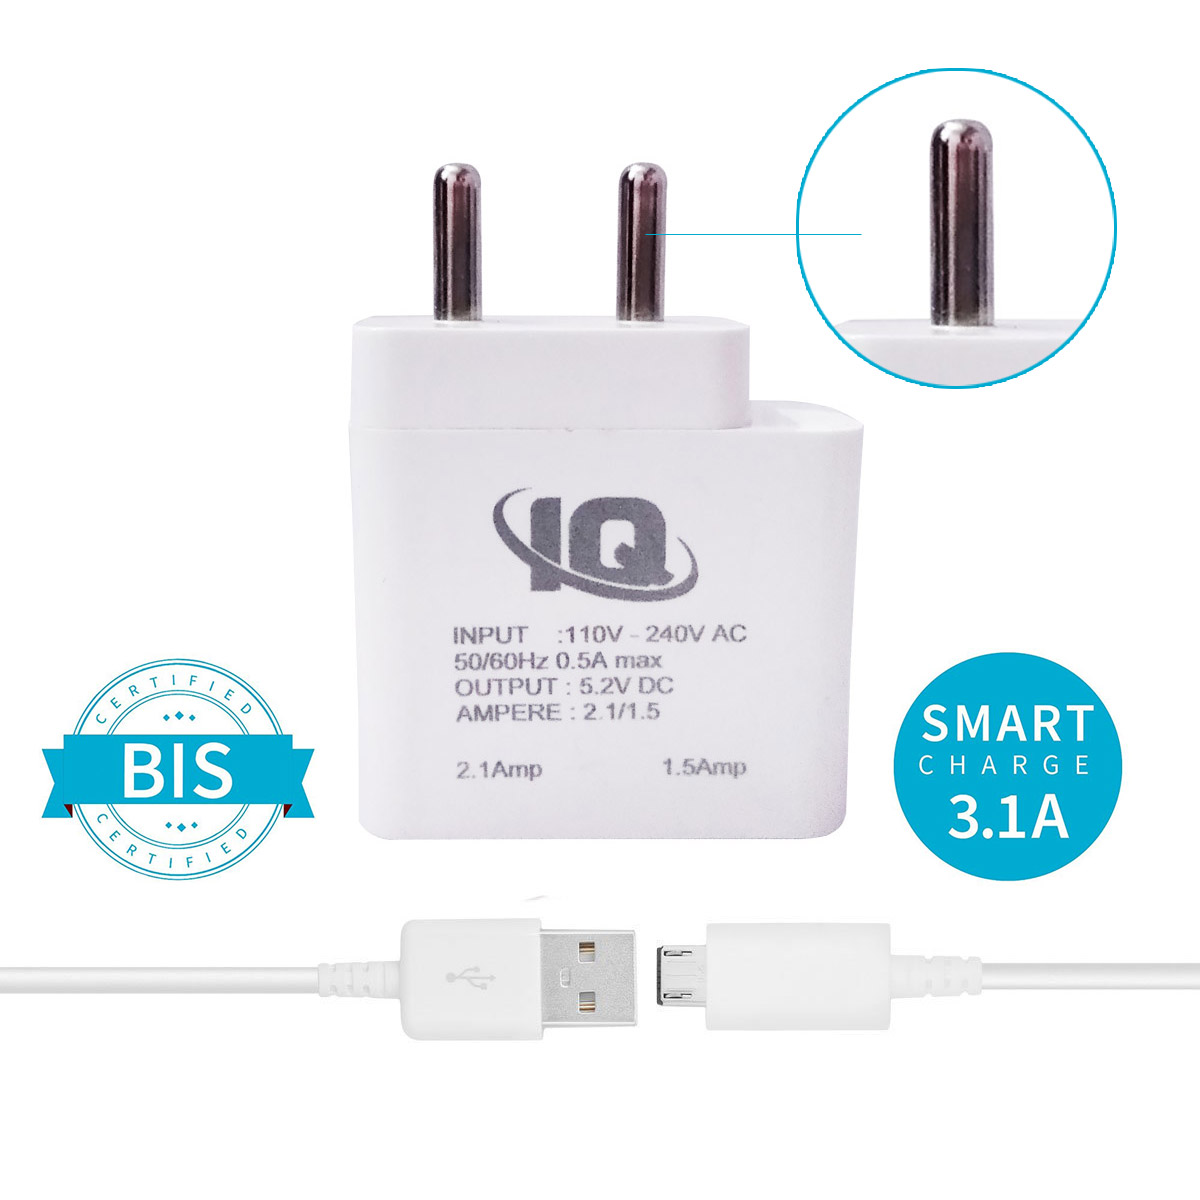 sublicart2 Redmi Note 4 Supported Wall Charger Made In India,travel Charger ,mobile Charger,dual Port Usb Plug Wall Charger Adapter With 1 Meter Micro Usb Cable